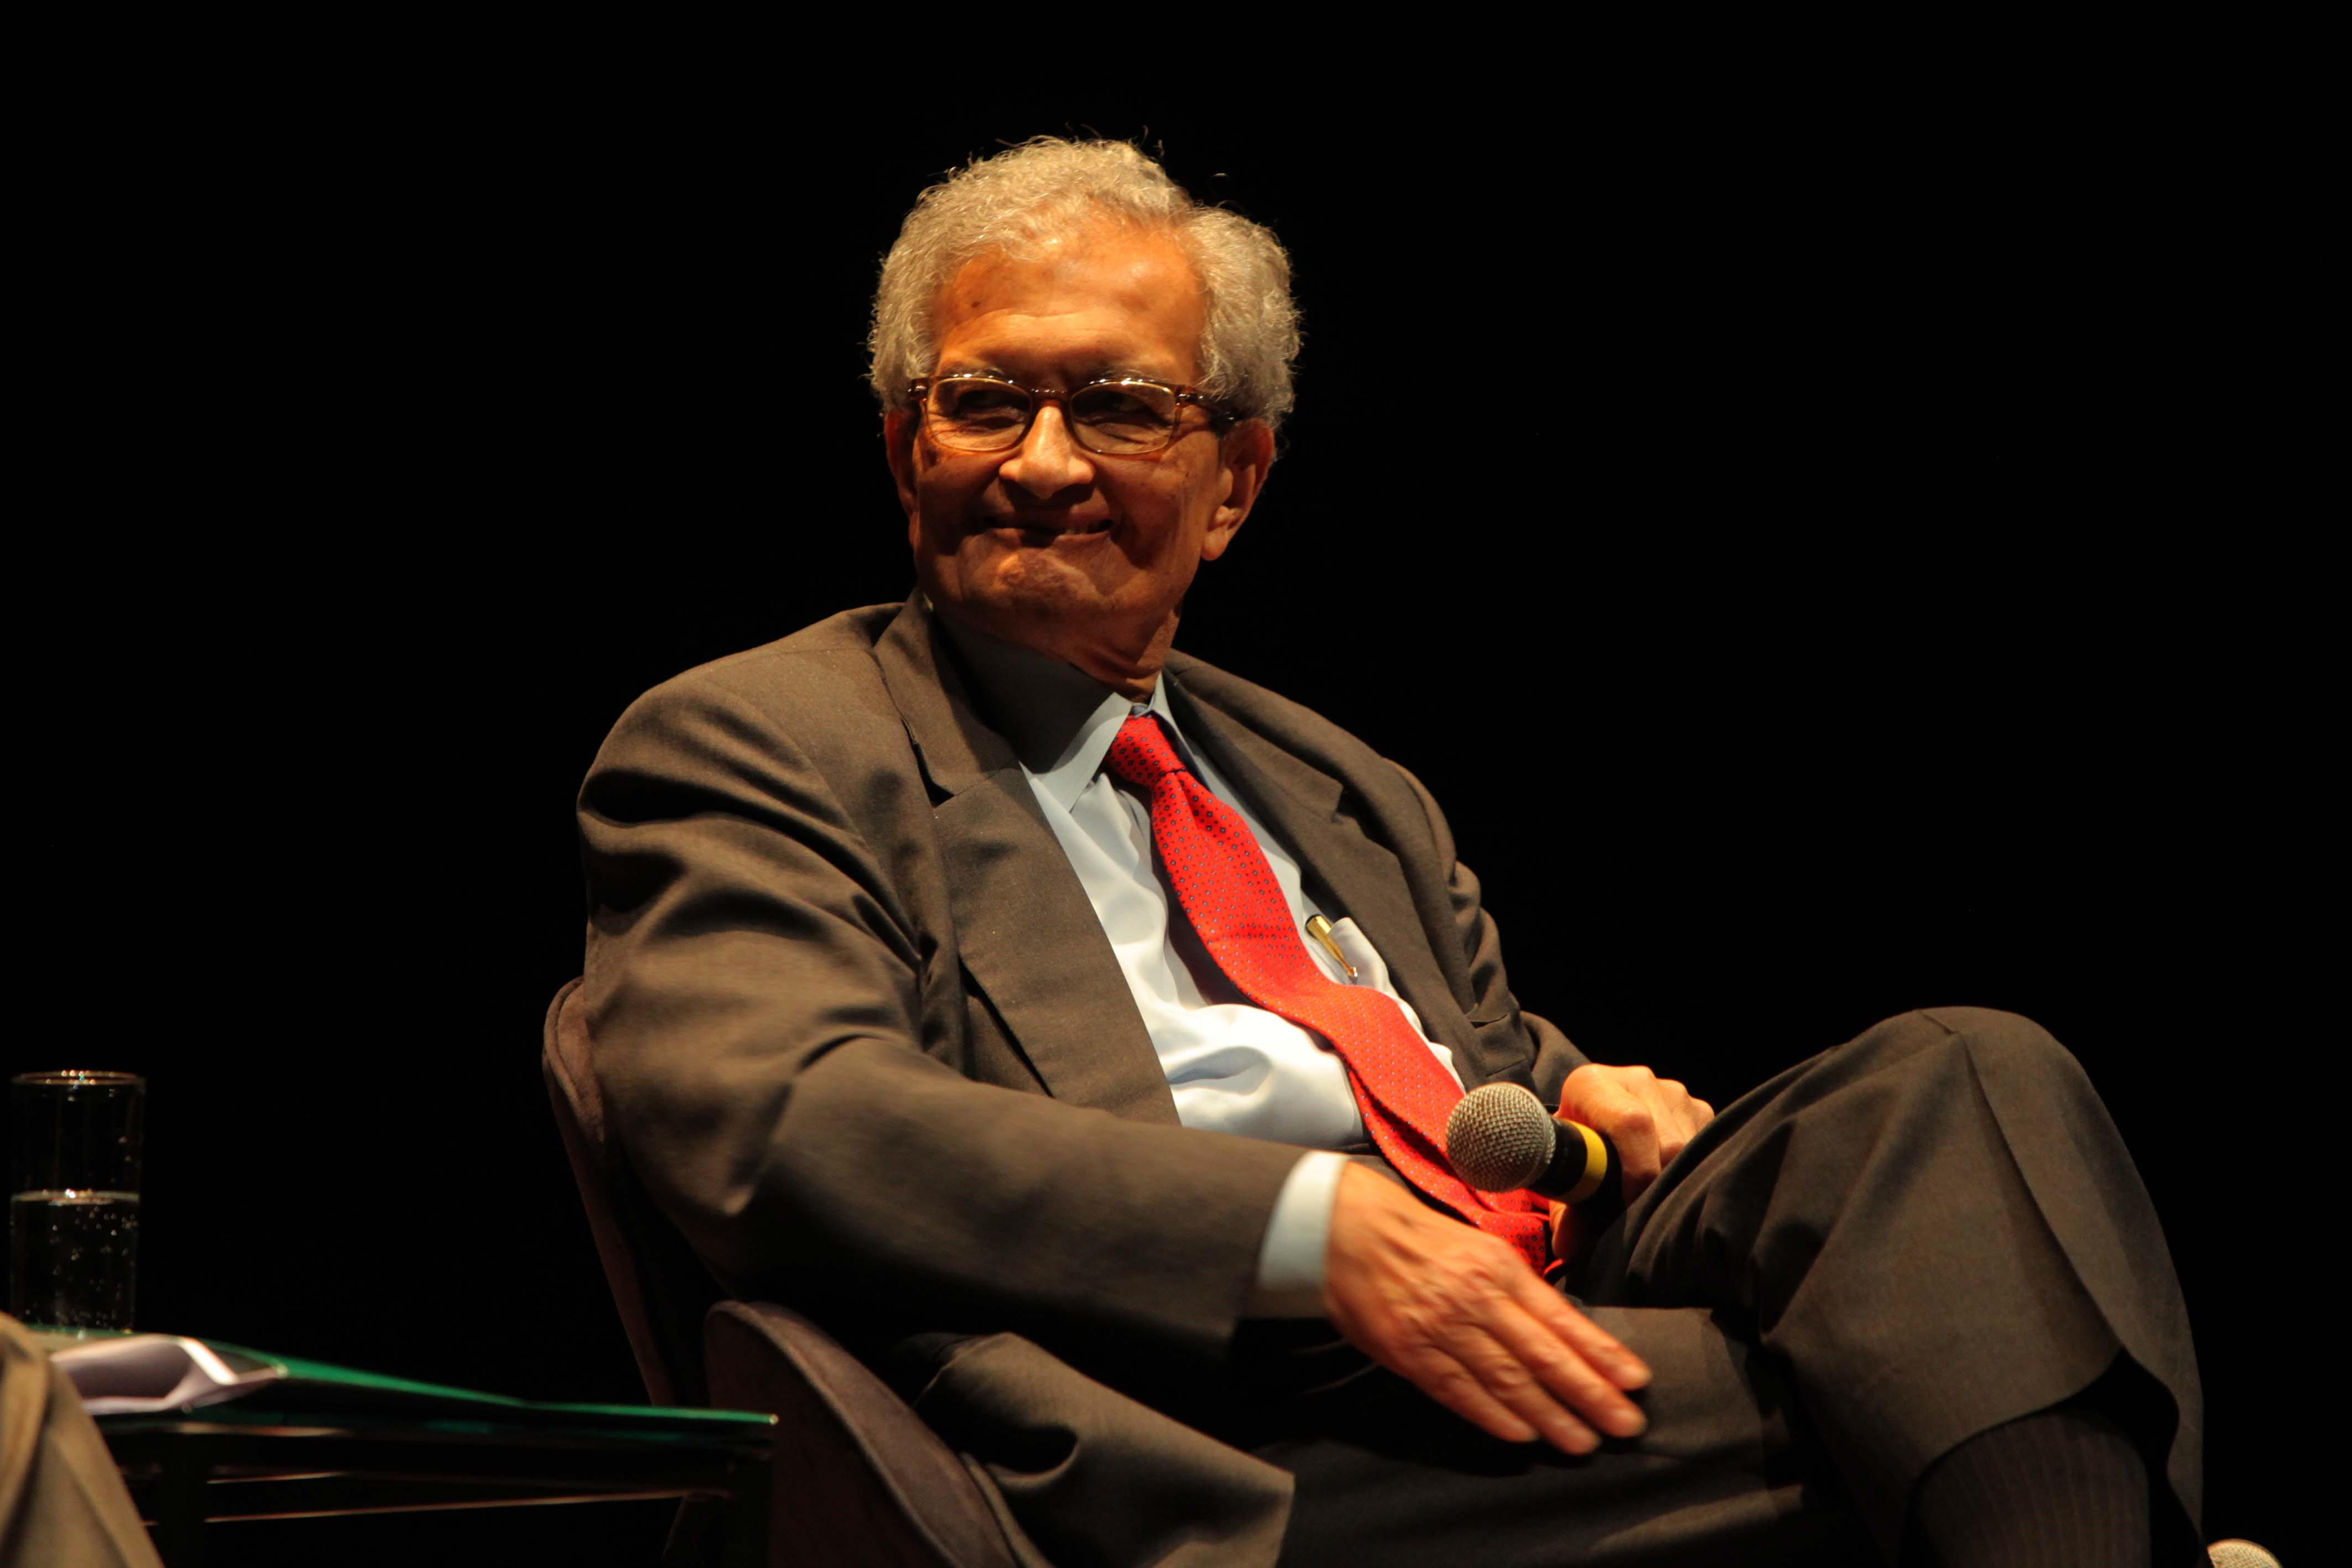 Amartya Sen received the 1998 Nobel Prize in economics for his research on social welfare and equality, particularly in developing countries. Credit: Creative Commons